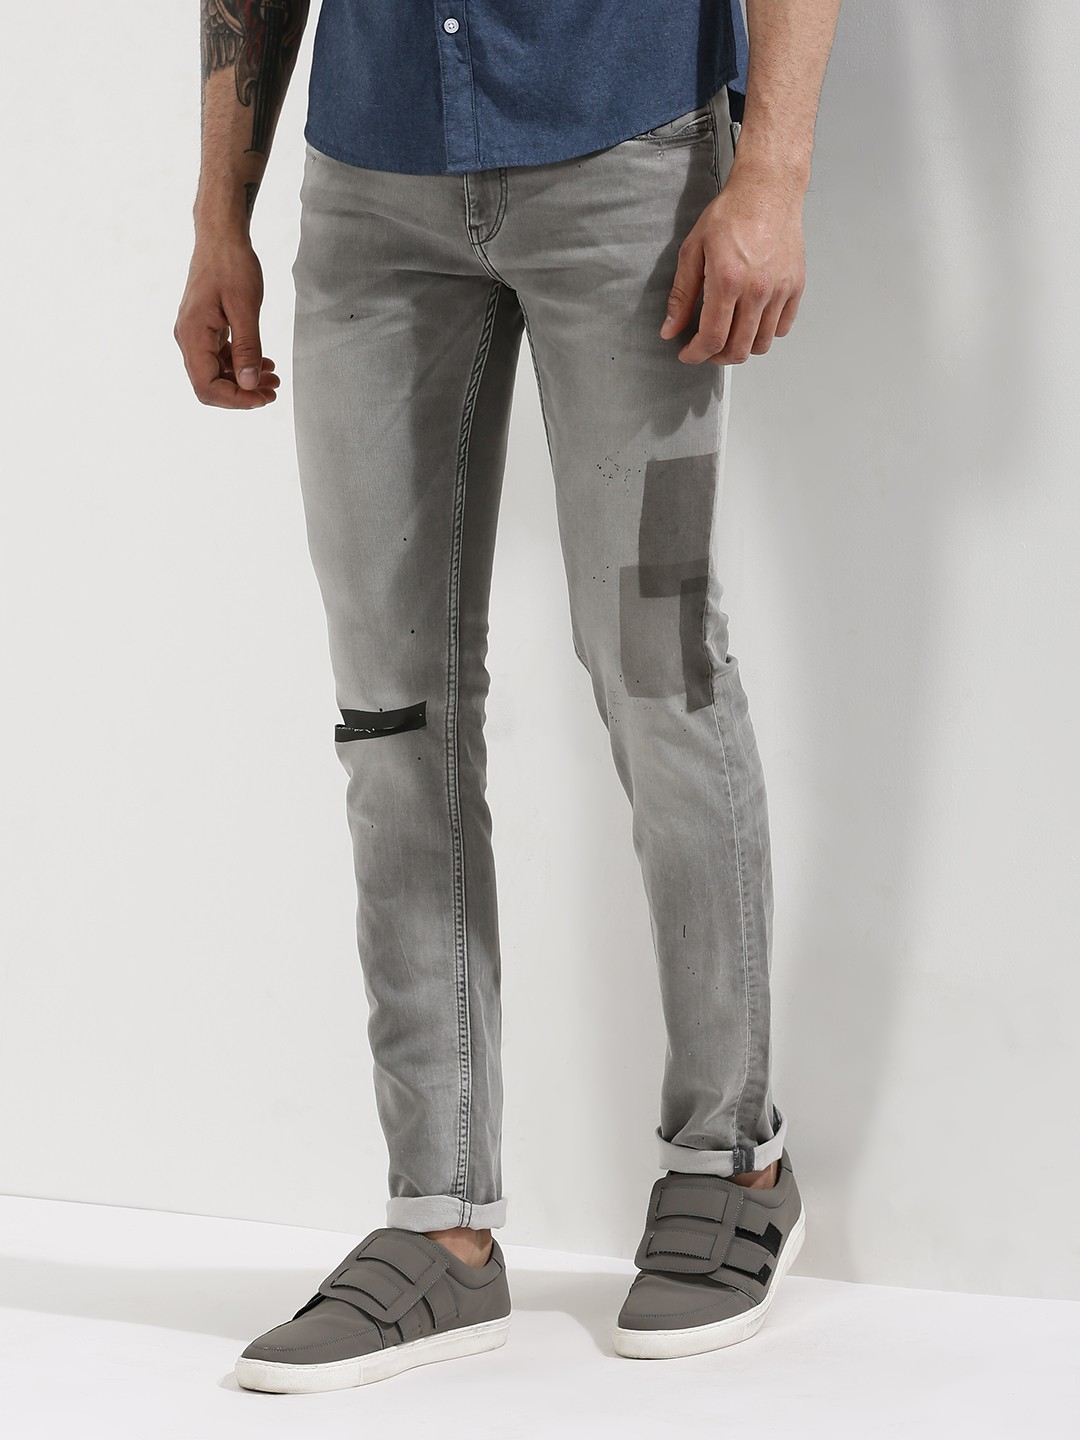 ... With Patches For Men - Men's Black/Grey Skinny Jeans Online in India